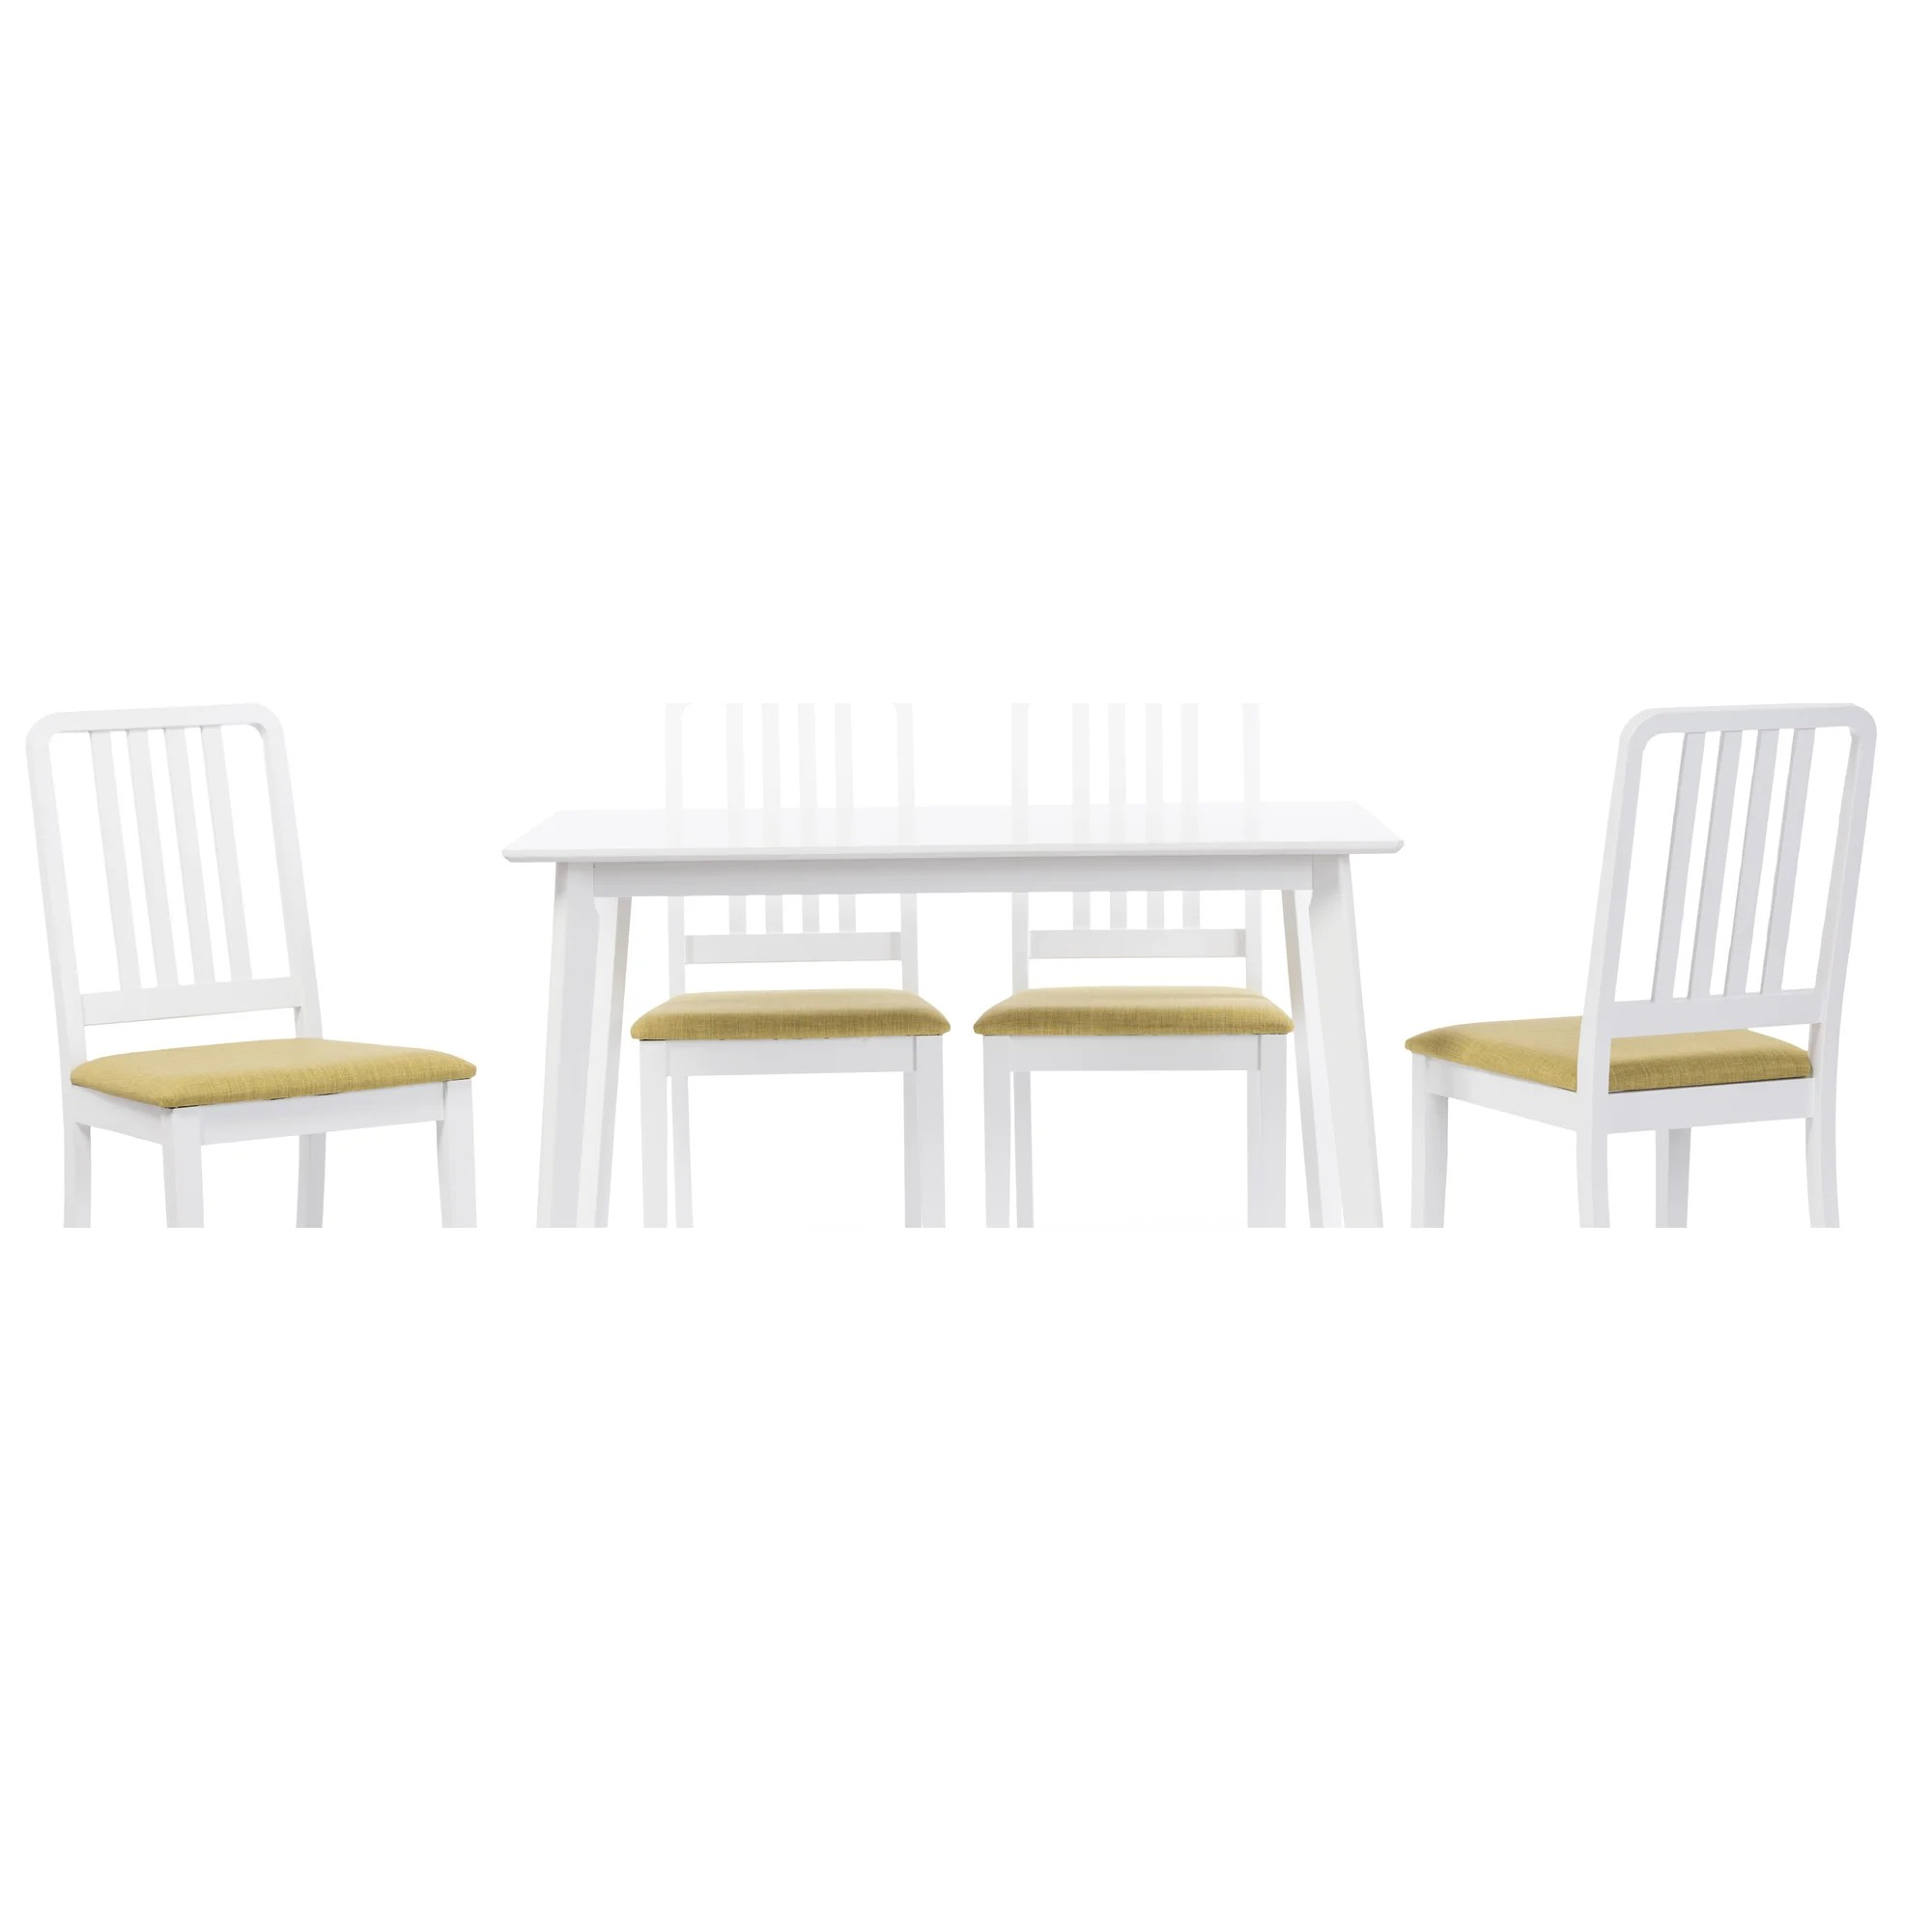 Wholesale Interiors Baxton Studio Baxton Dining Chair